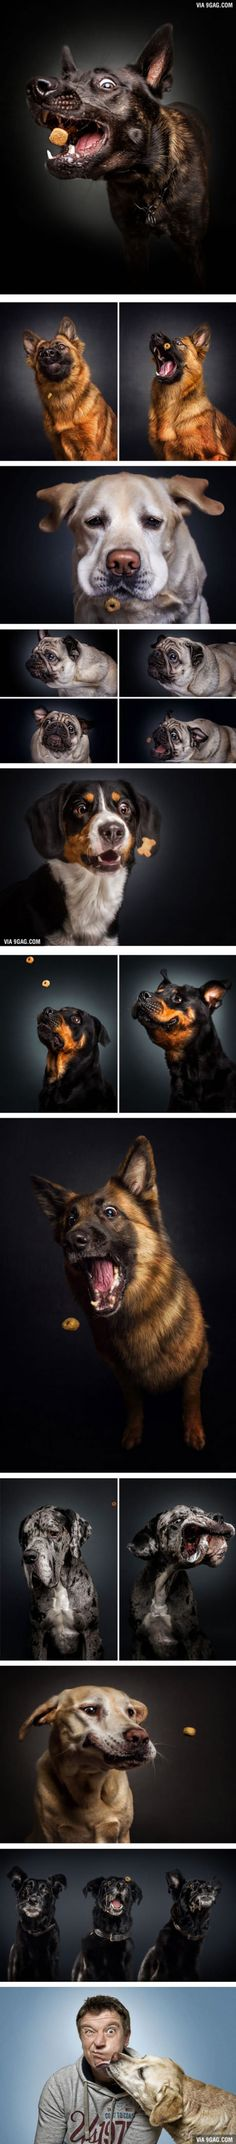 Photographer Captures Hungry Dogs' Funny Faces When They Catch Treats (By Christian Vieler)